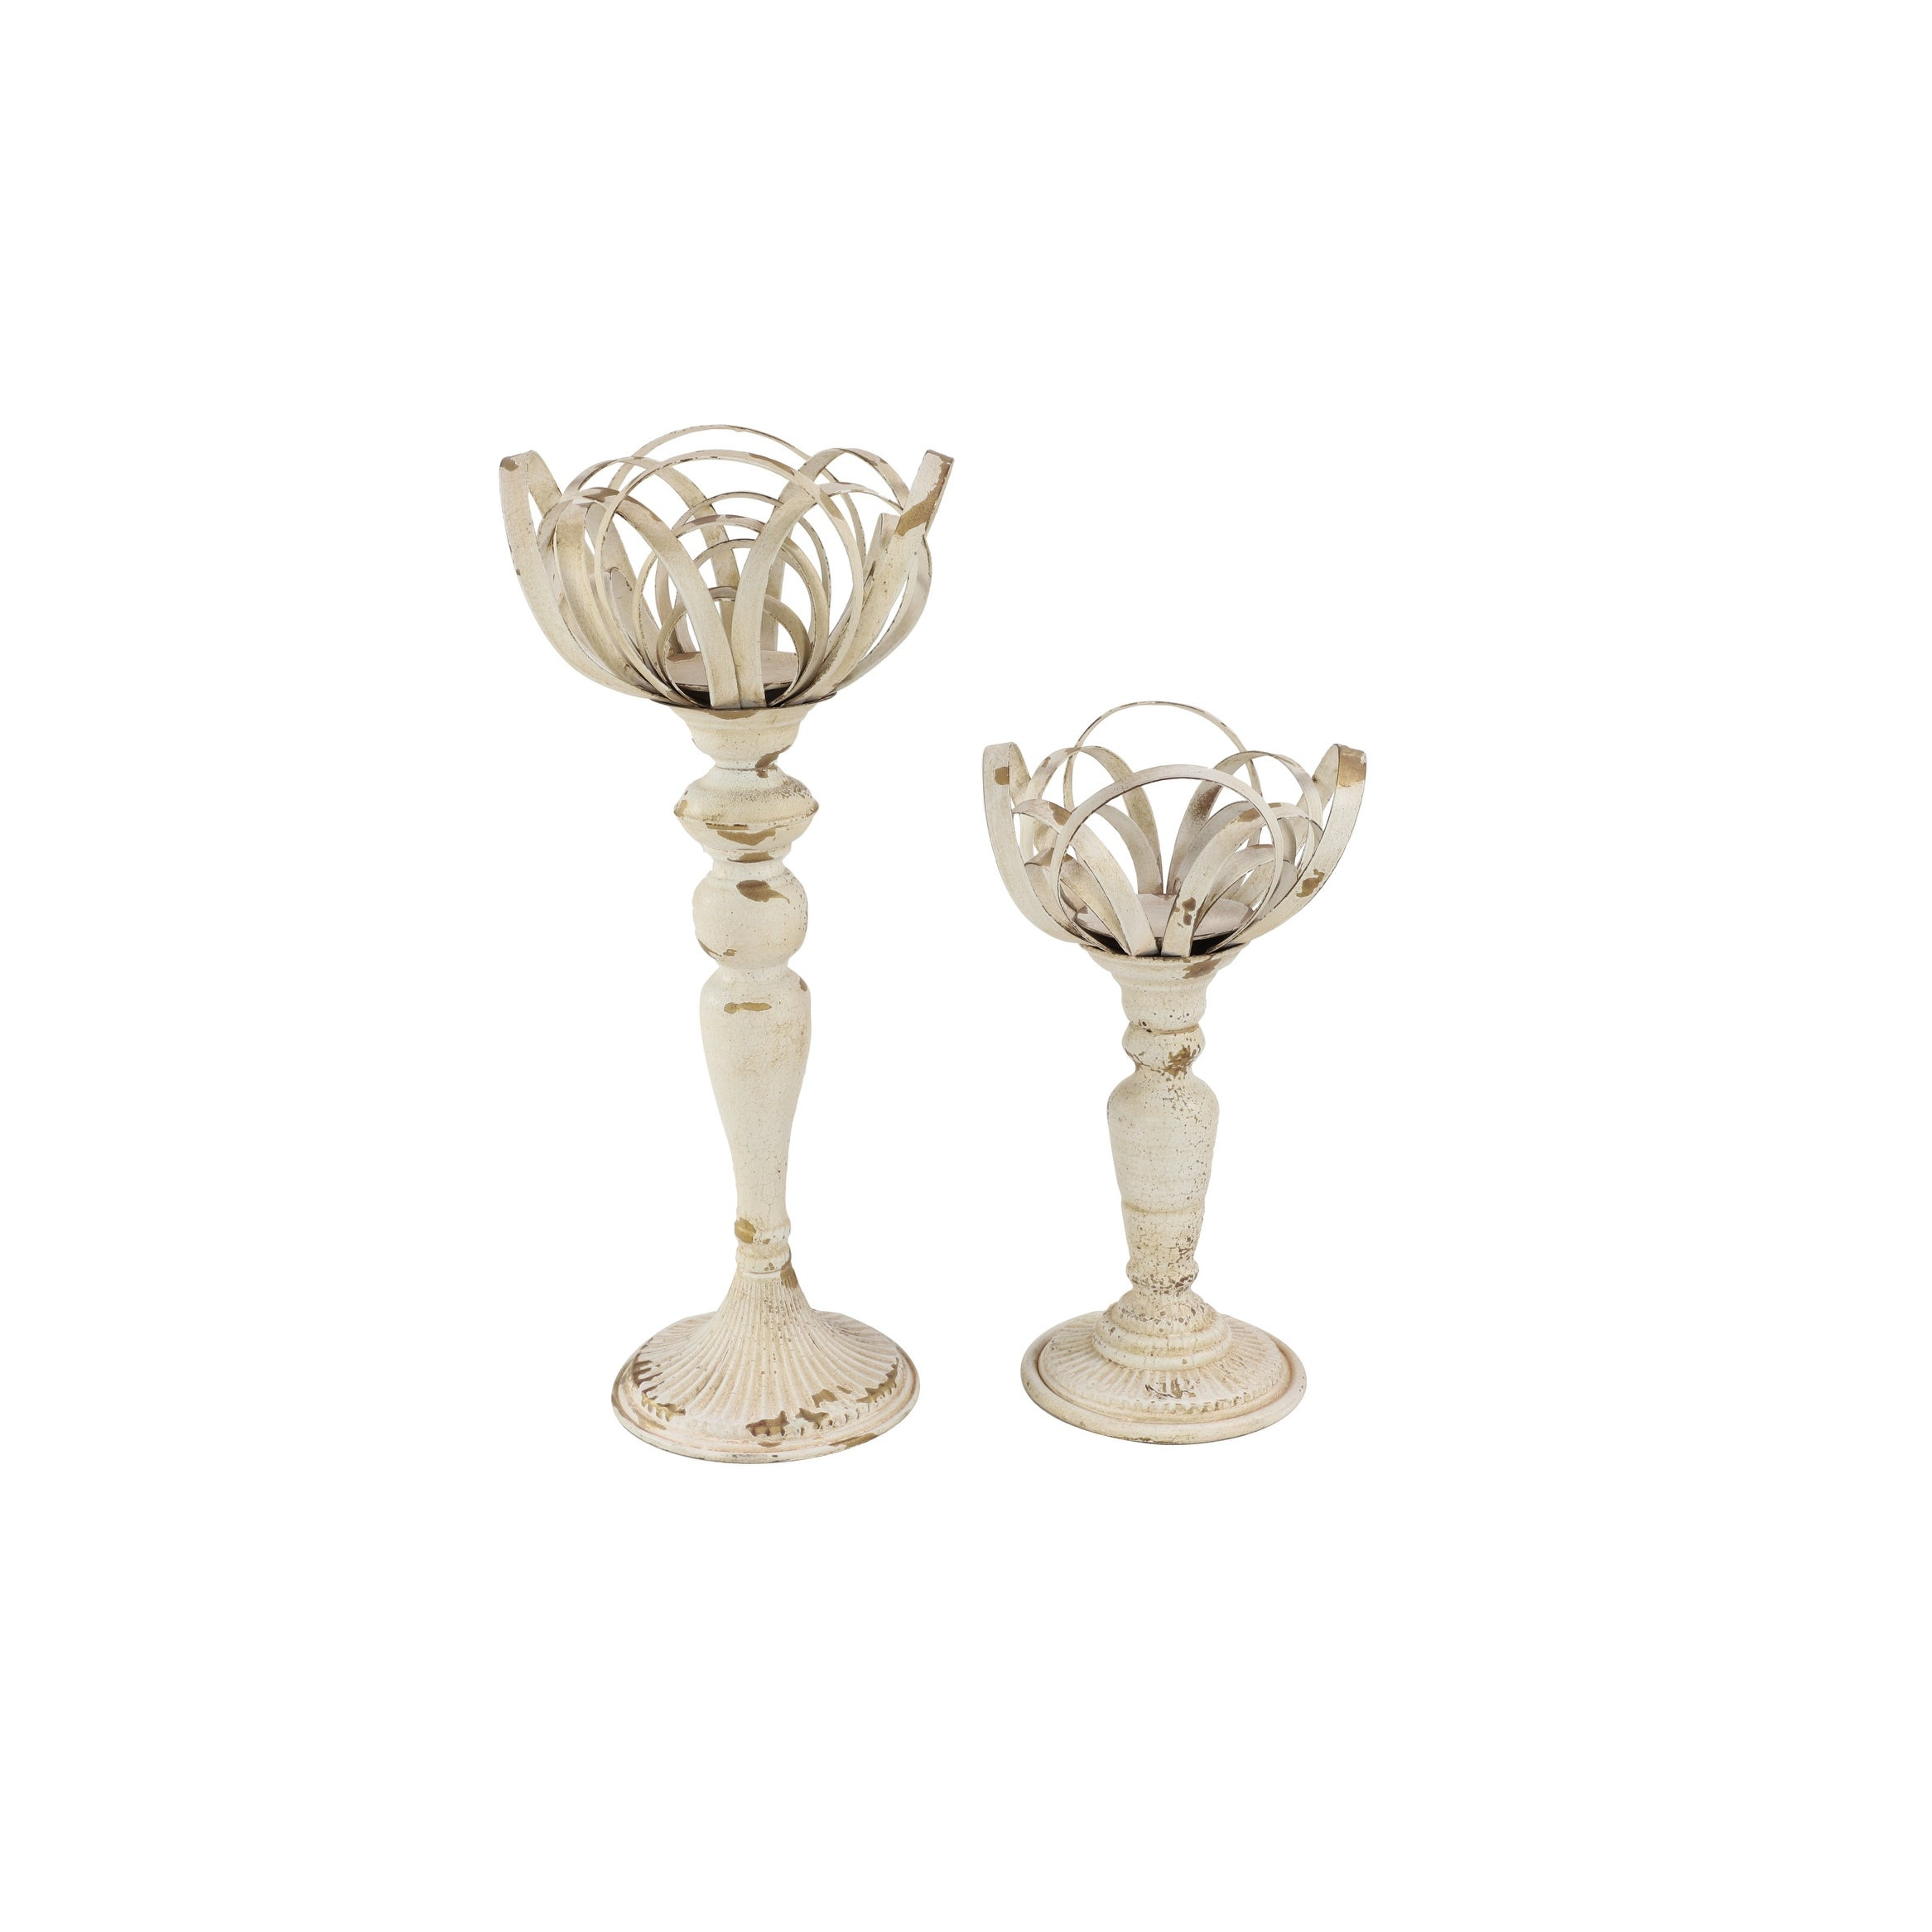 Tall Distressed White Vintage Goblet Shaped Metal Candle Holders Set Of 2 9 X 9 X 22 Overstock 32140743